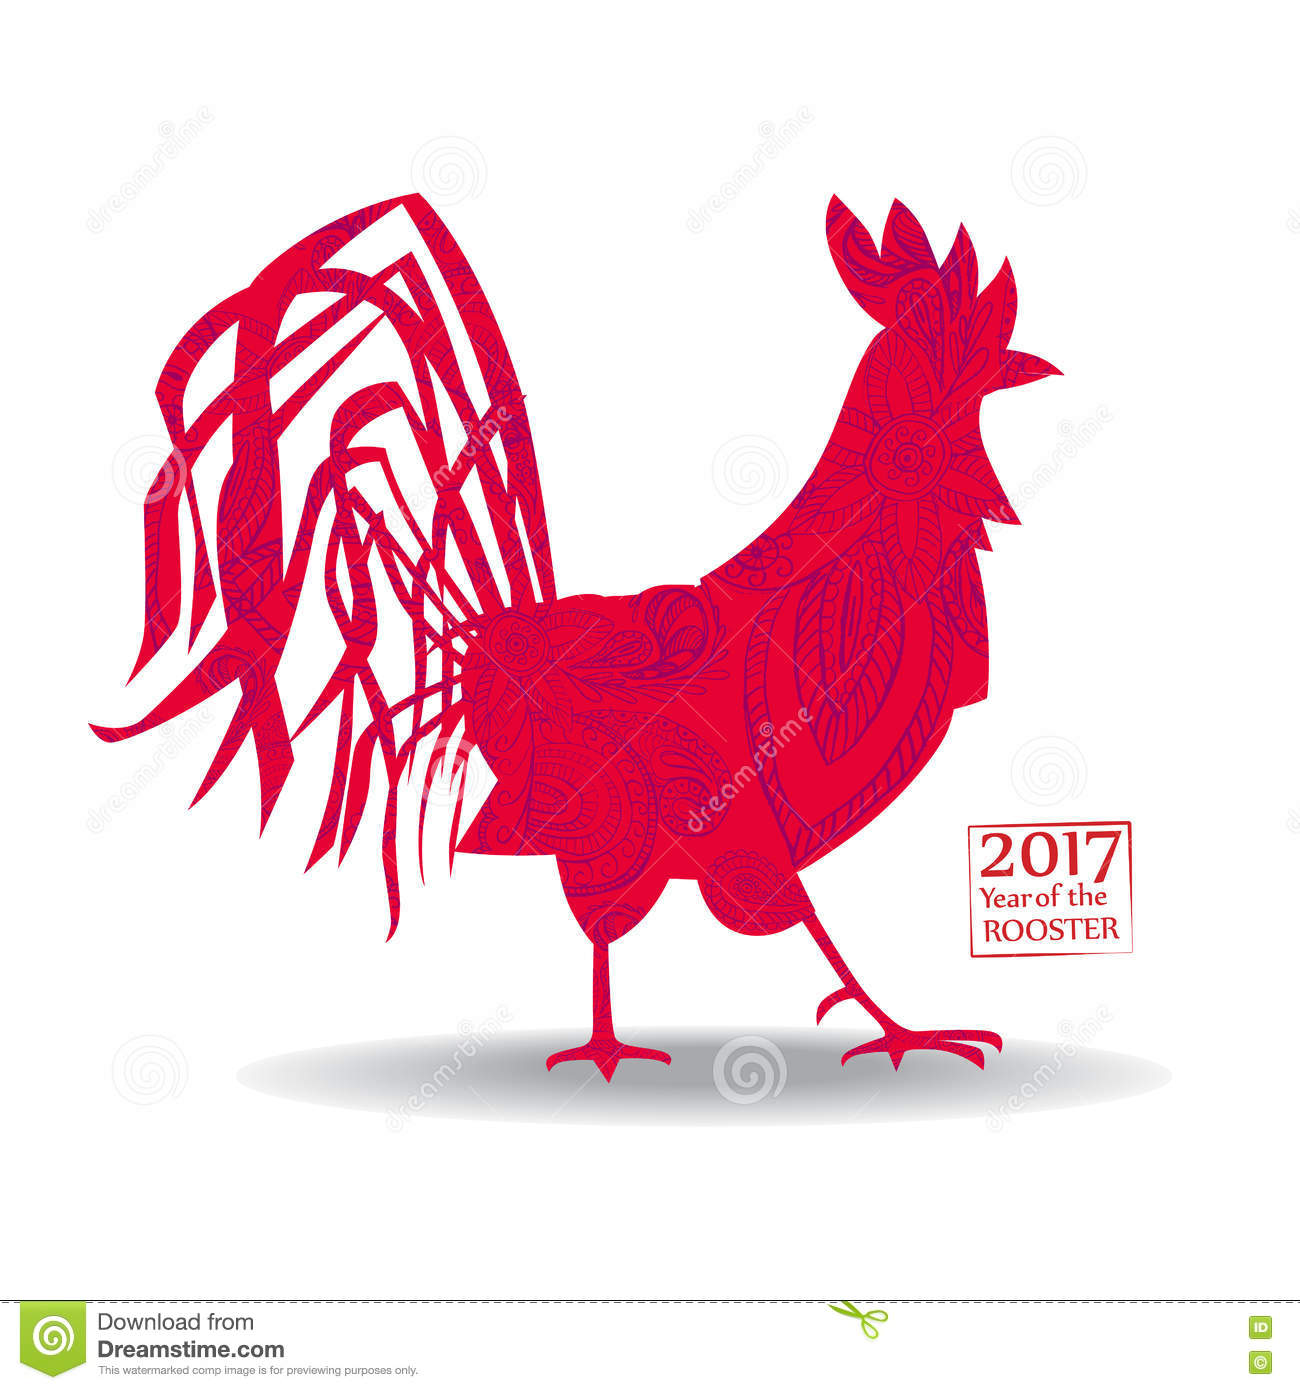 Chinese Calendar Illustration : Vector illustration of rooster symbol on the chinese